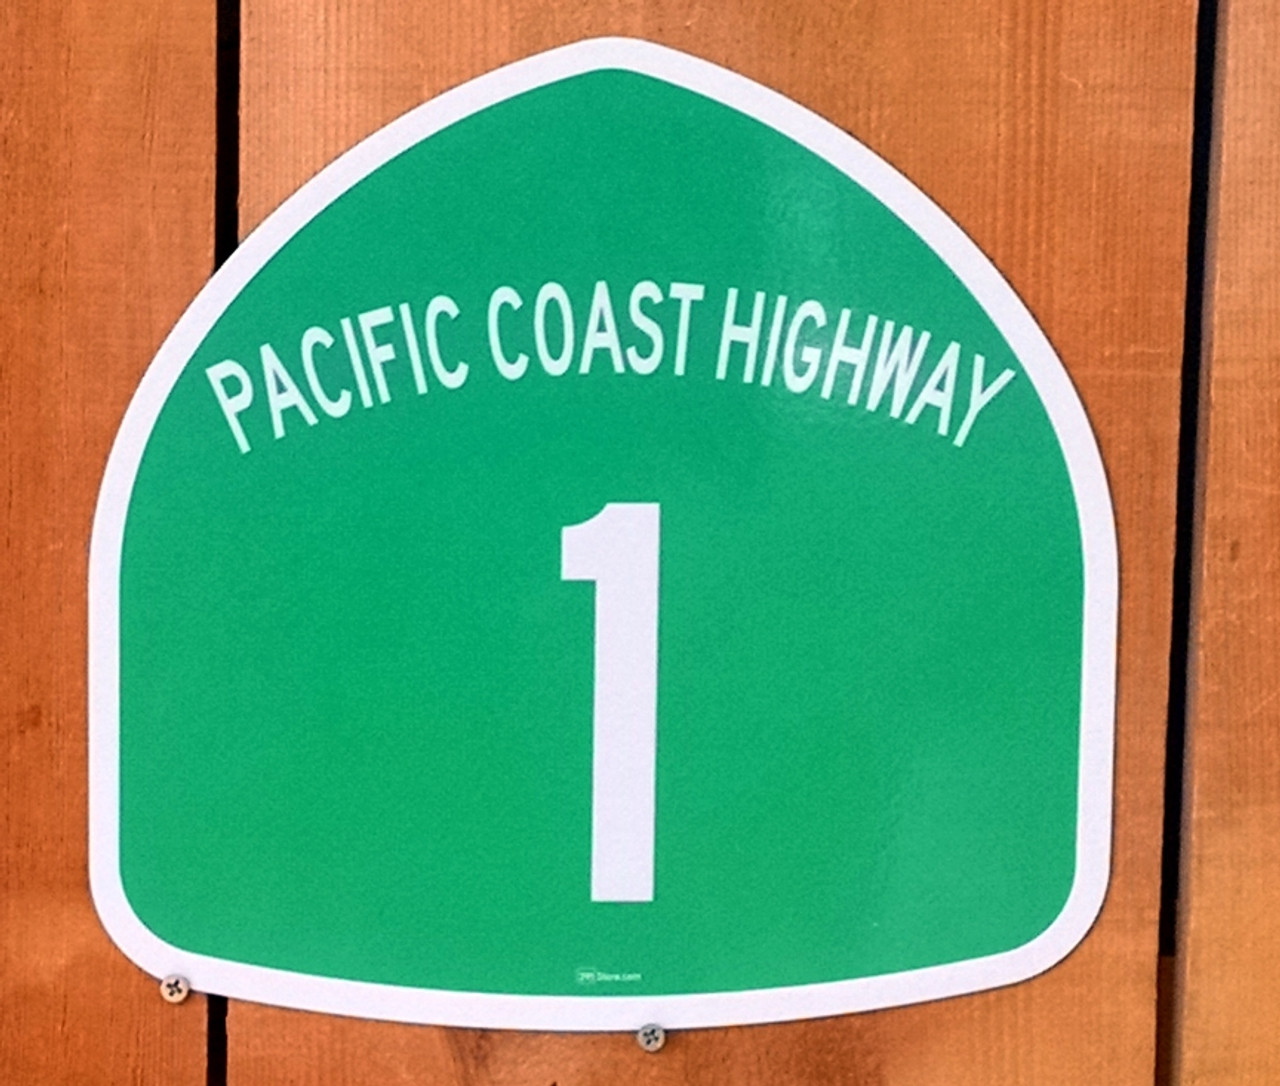 California 1 Road Sticker Pacific Coast Highway Sign Decal